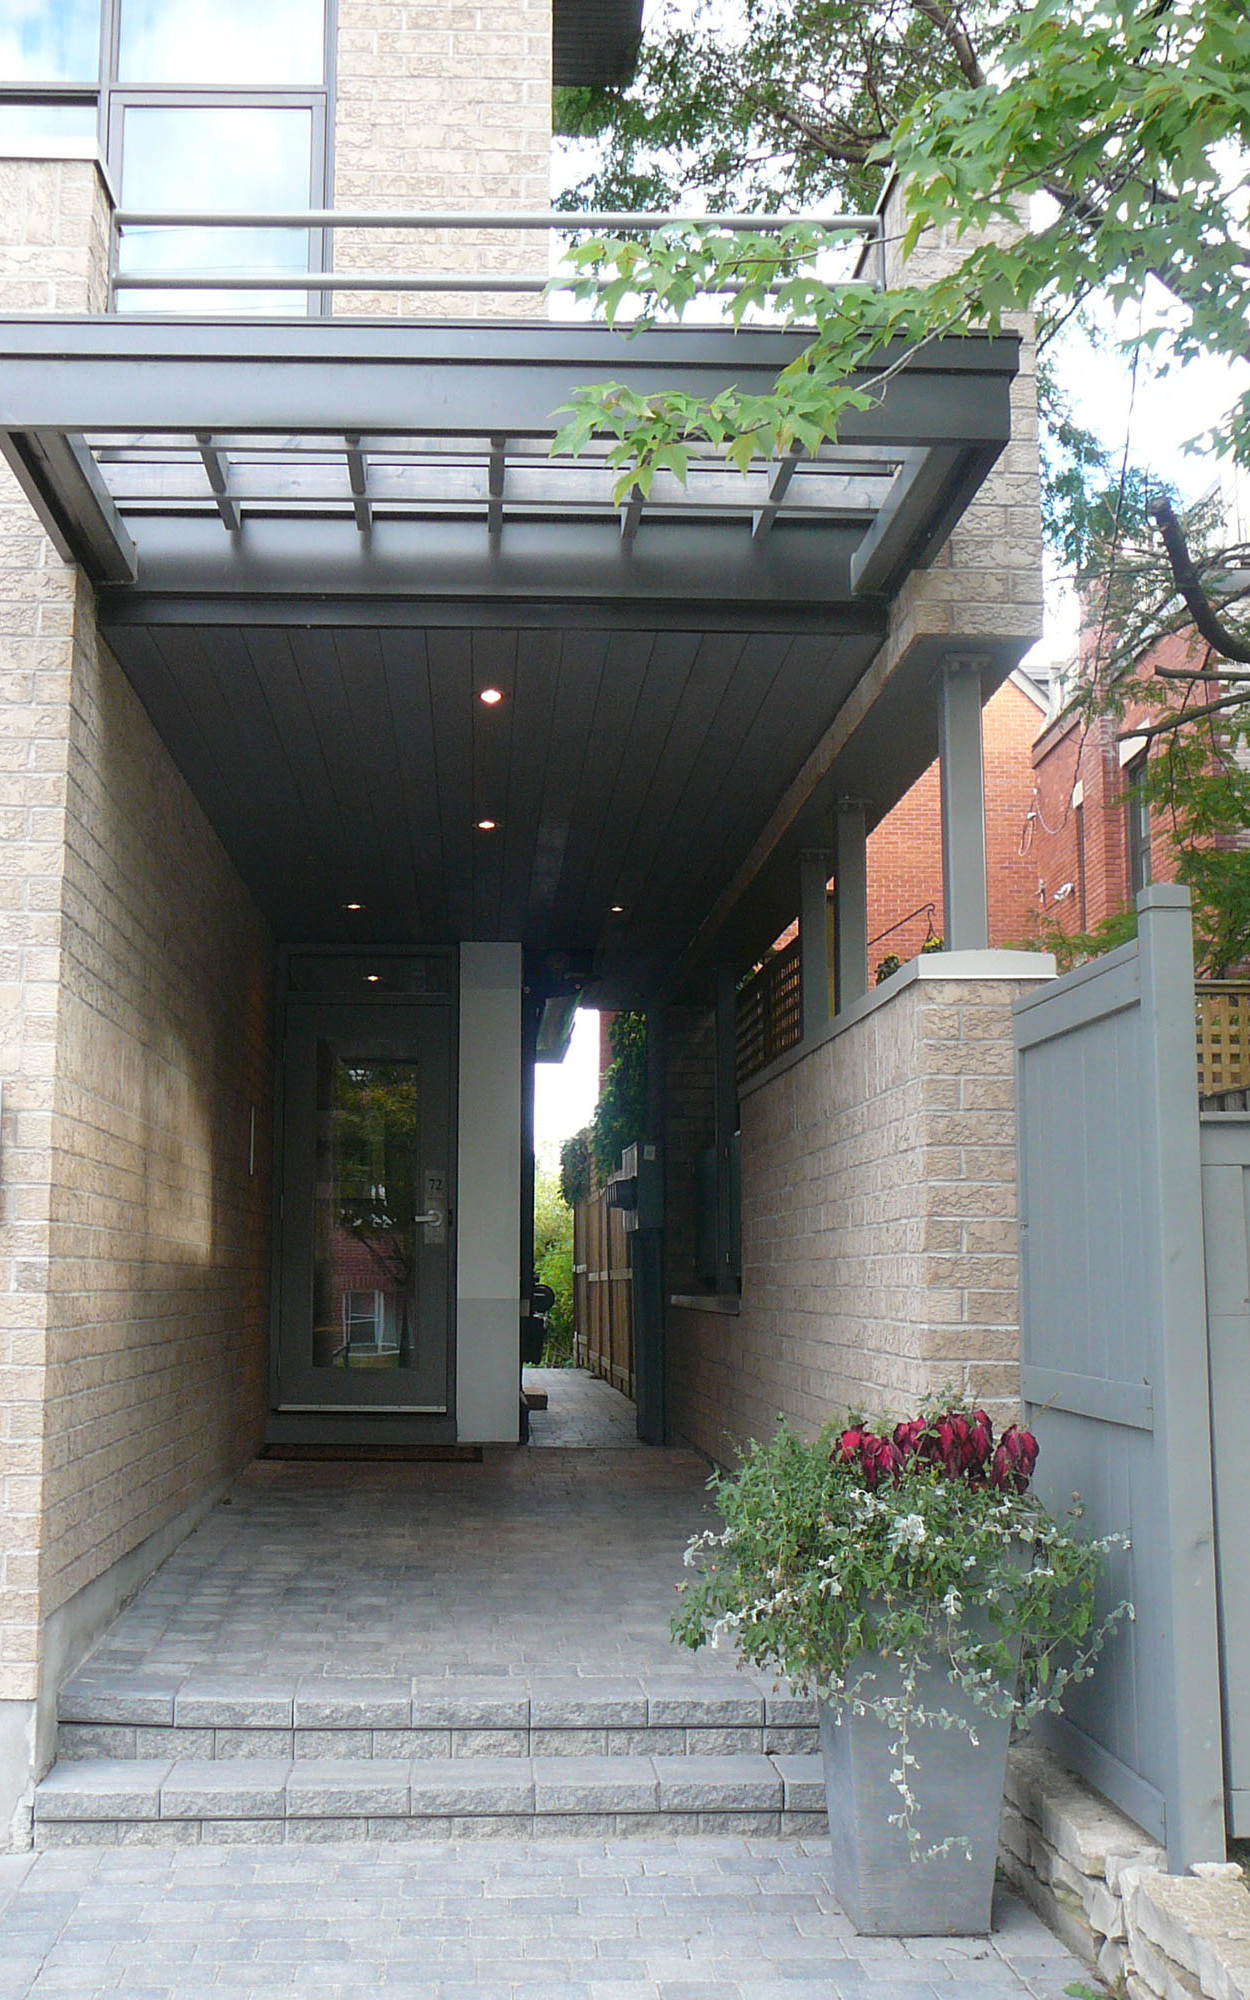 Detail Image of Entry from Frank Street